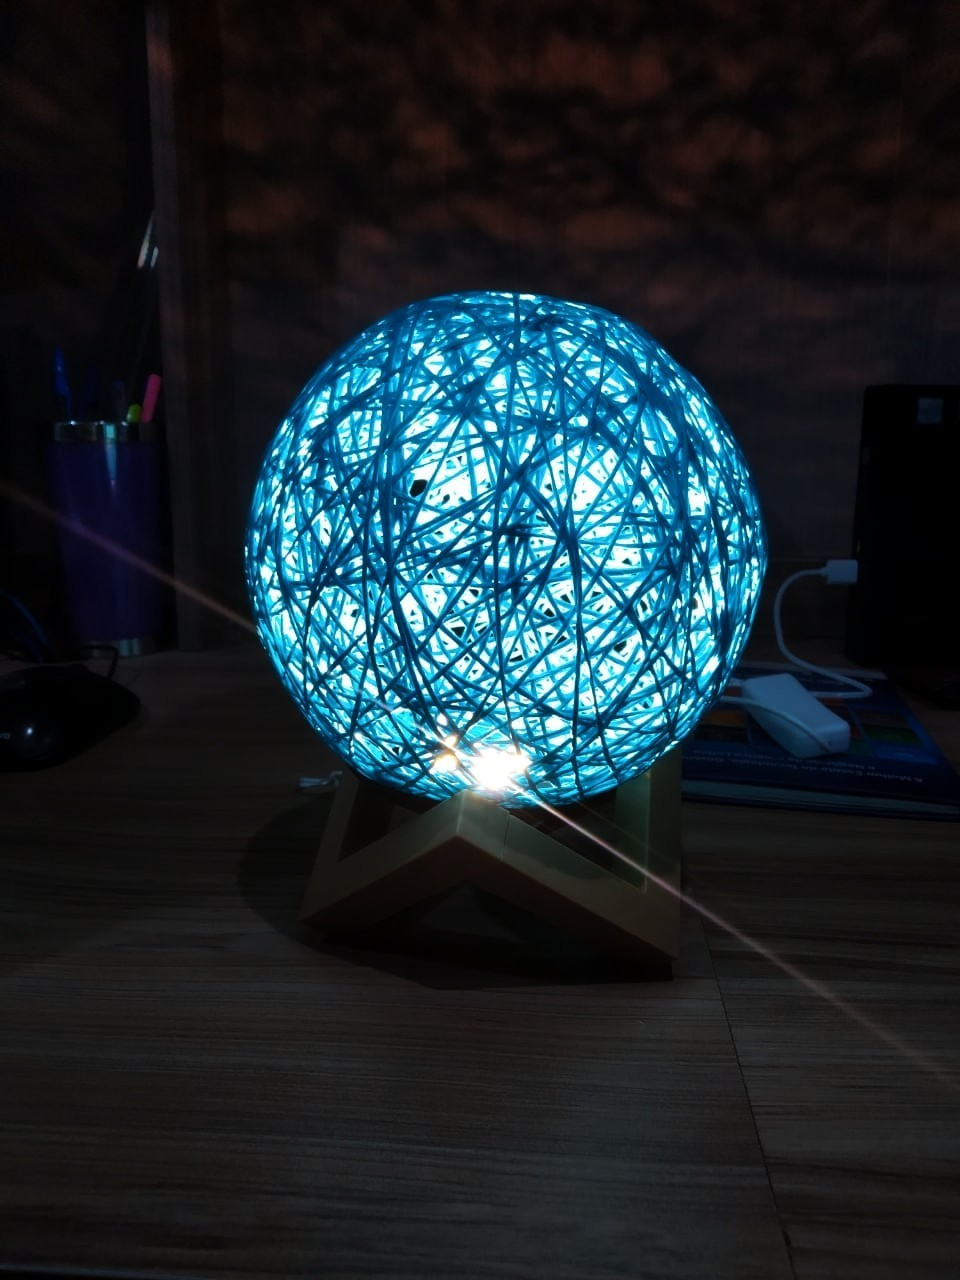 Luminária Decorativa Bola de Barbante 3D Azul (12x12) - InterPonte